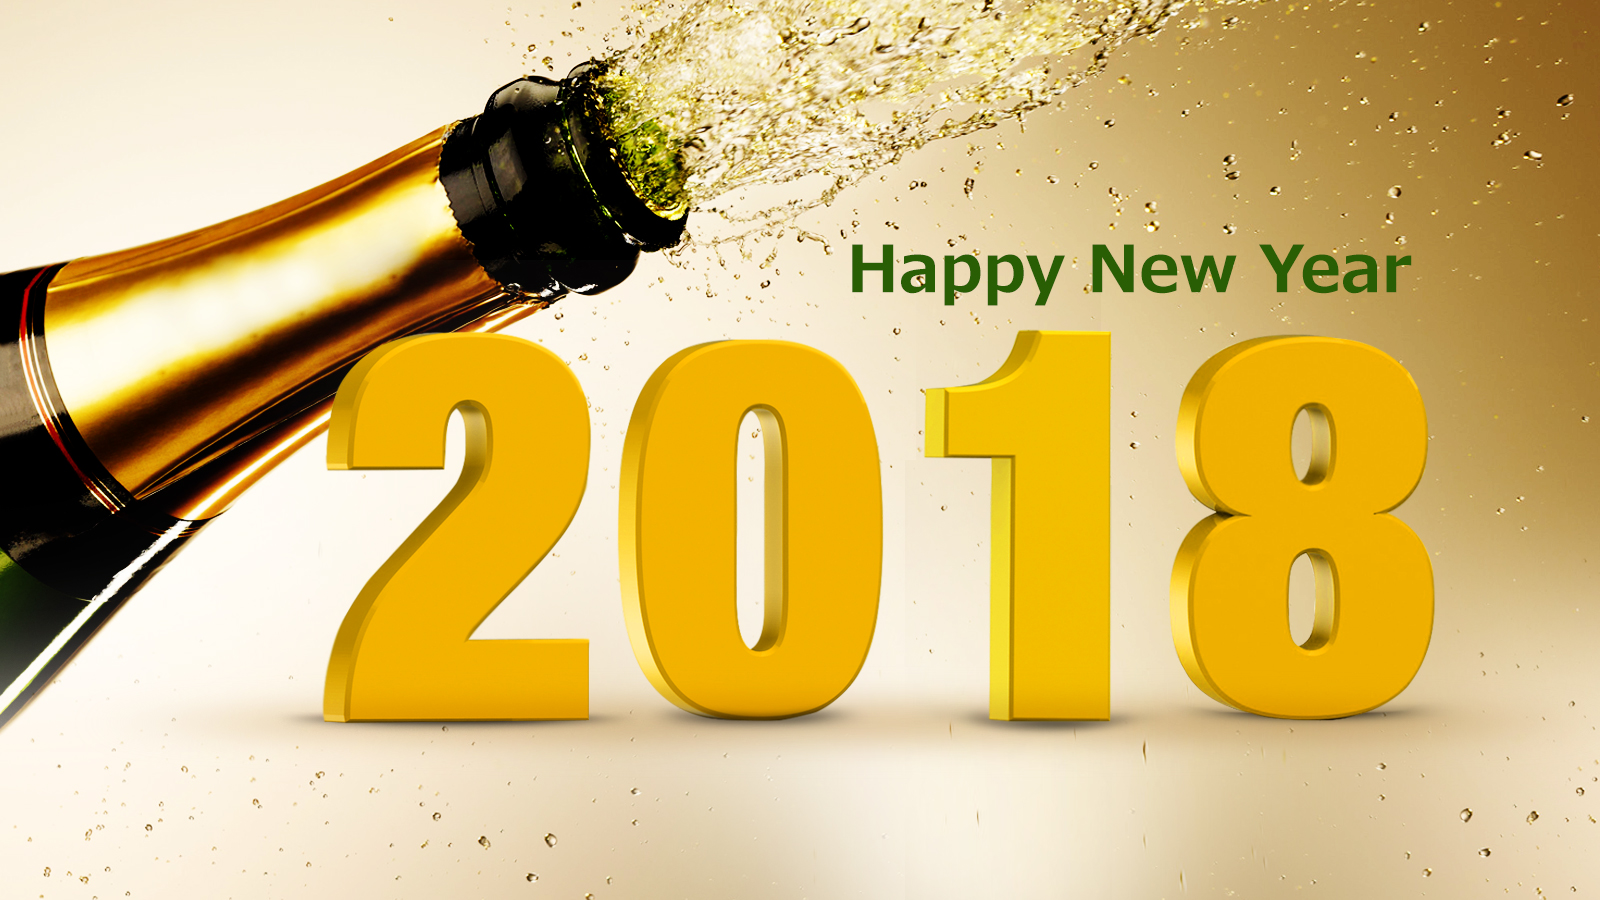 Happy New Year 2018 Sms